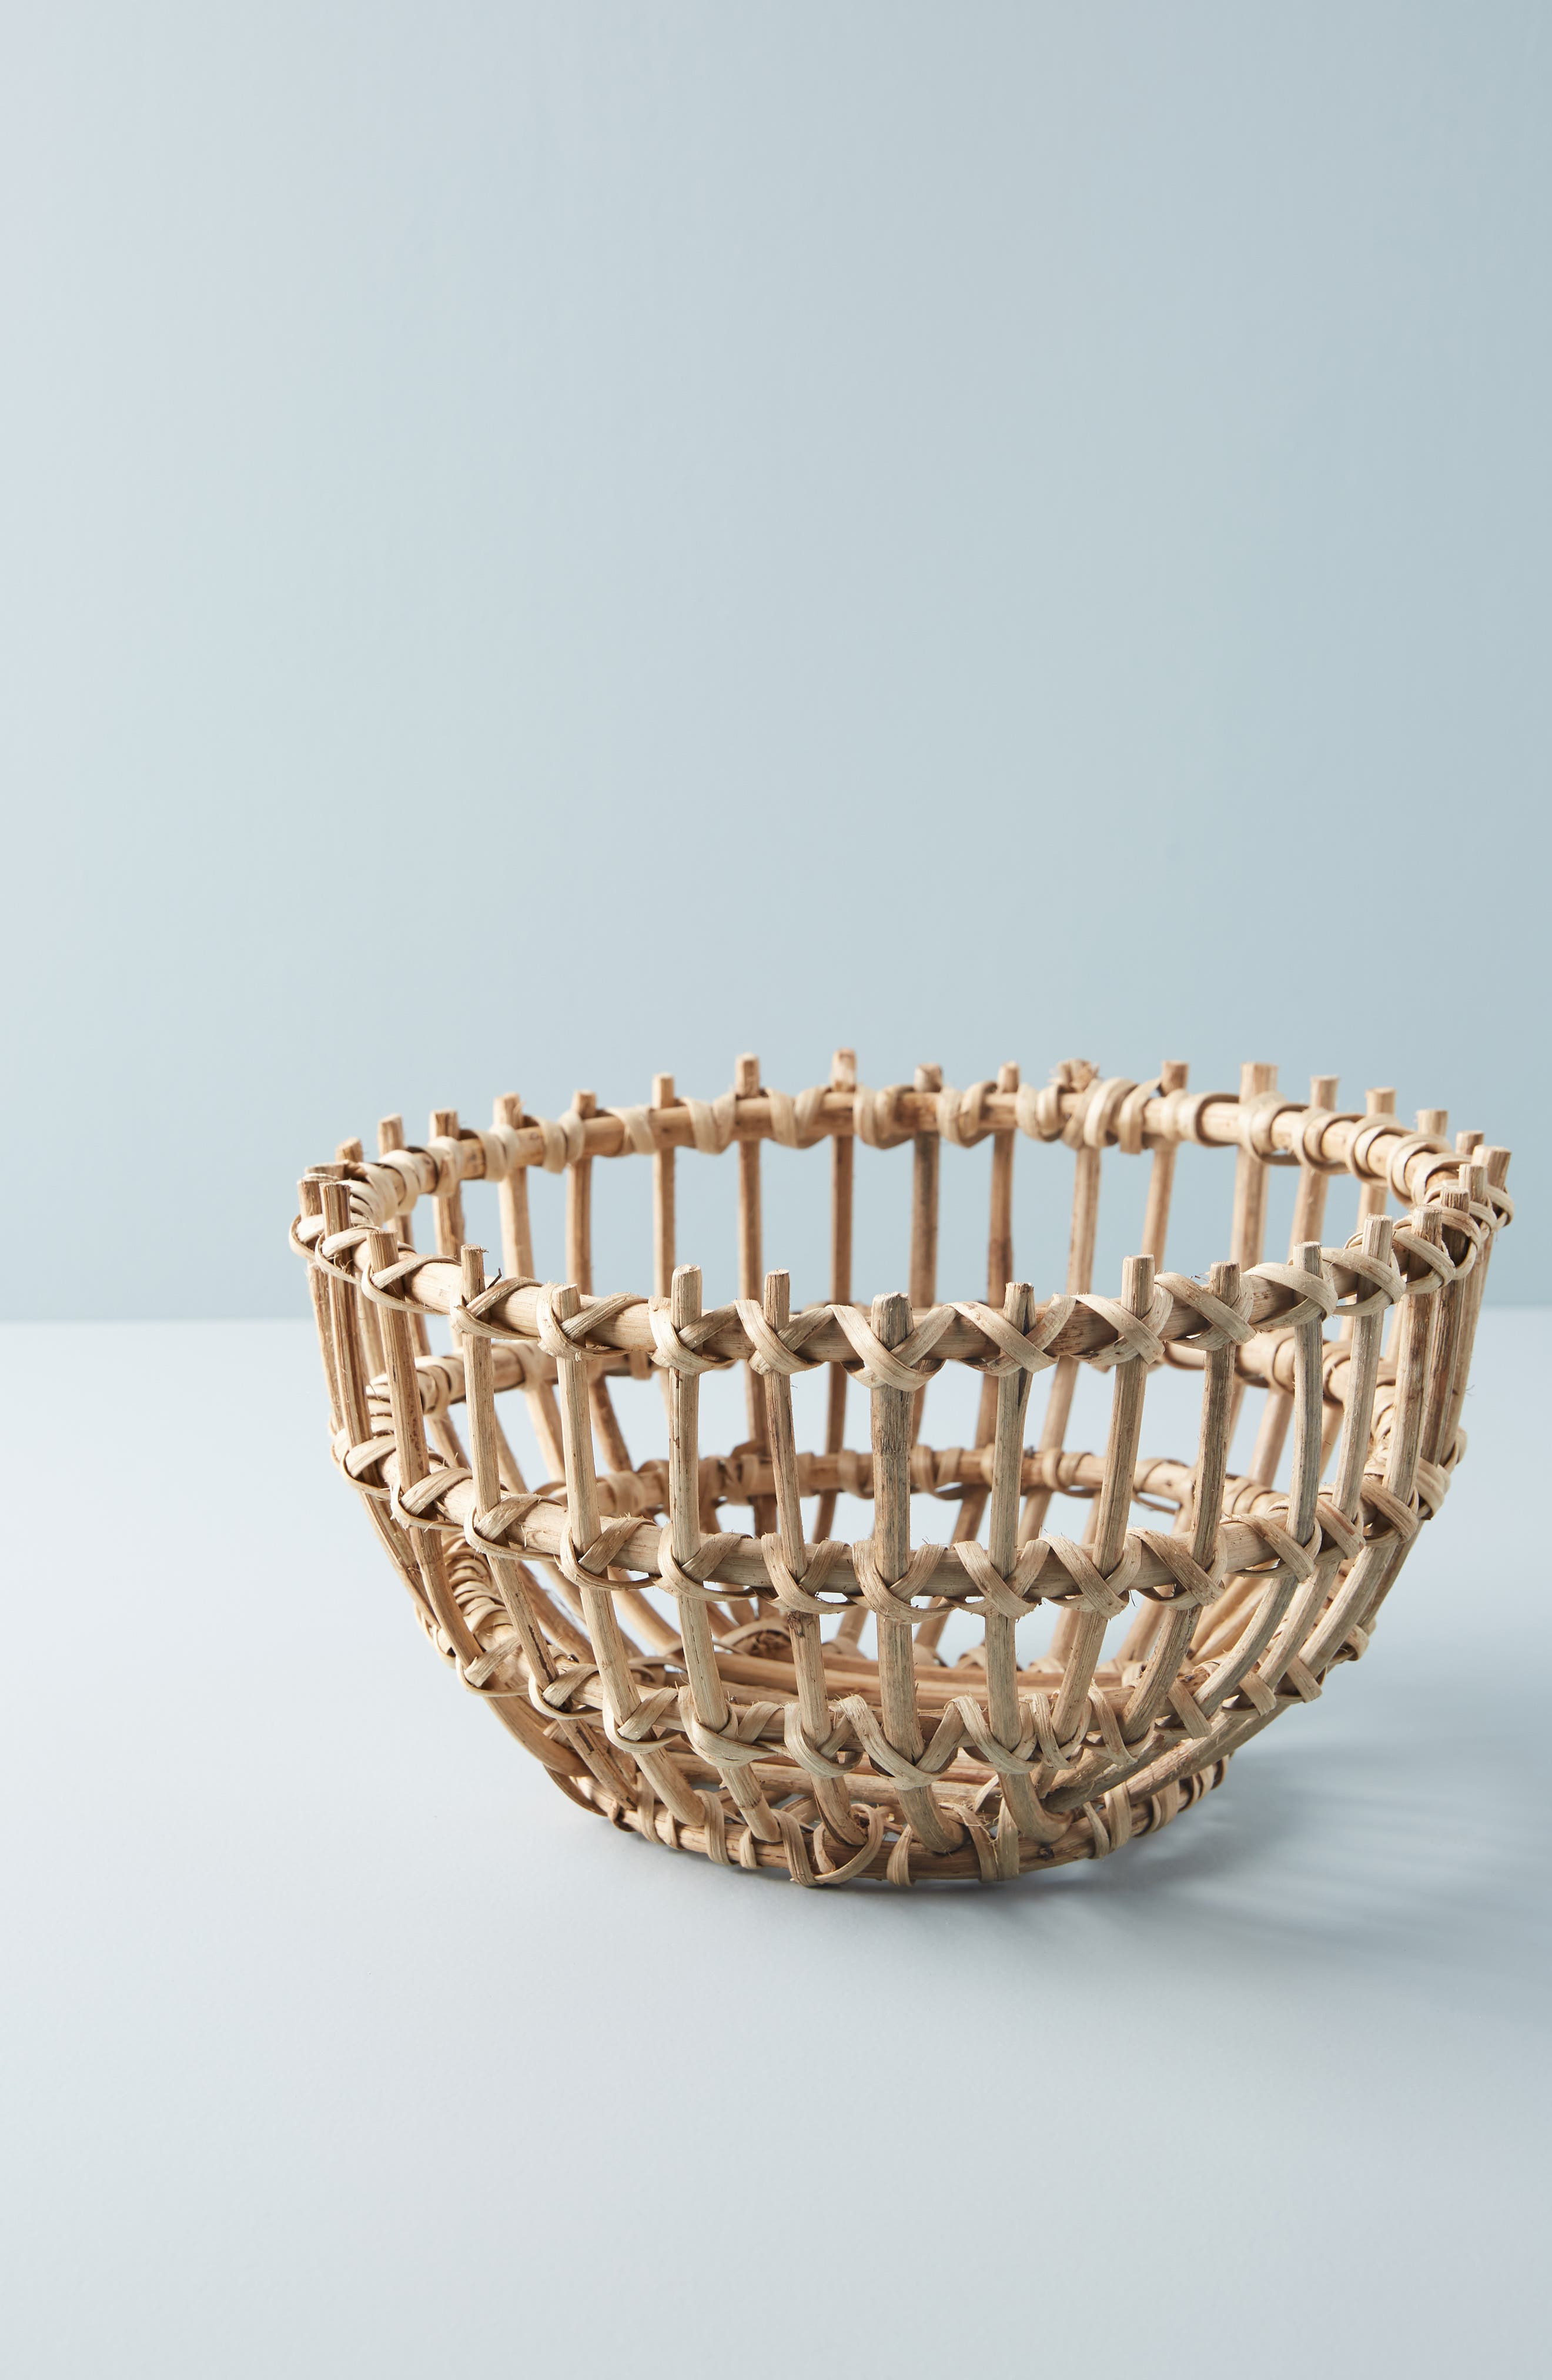 ANTHROPOLOGIE, Anthropology Woven Wooden Basket, Main thumbnail 1, color, BROWN